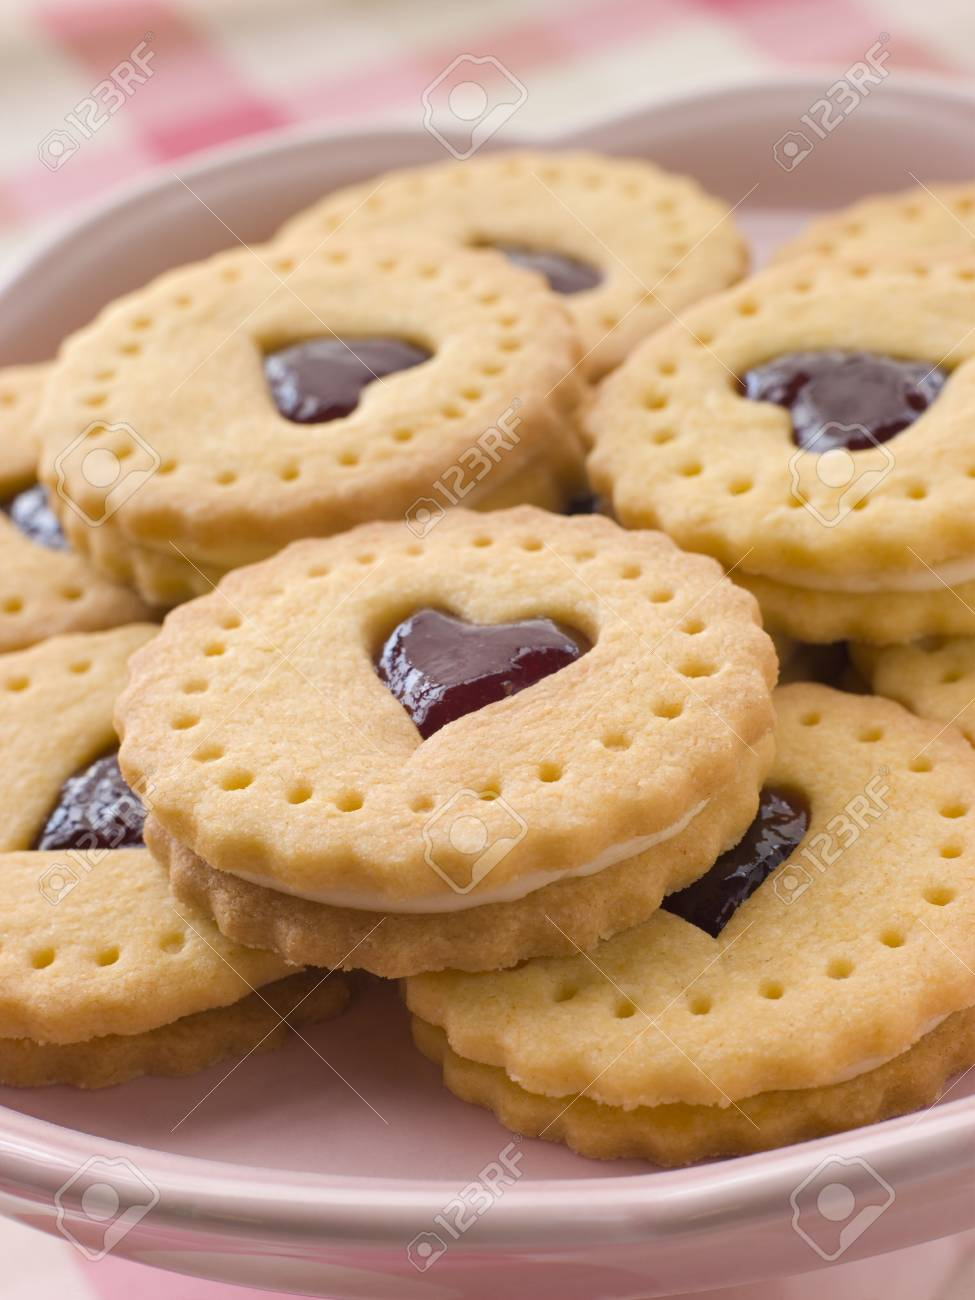 Jam and Cream Heart Biscuits Stock Photo - 3600144